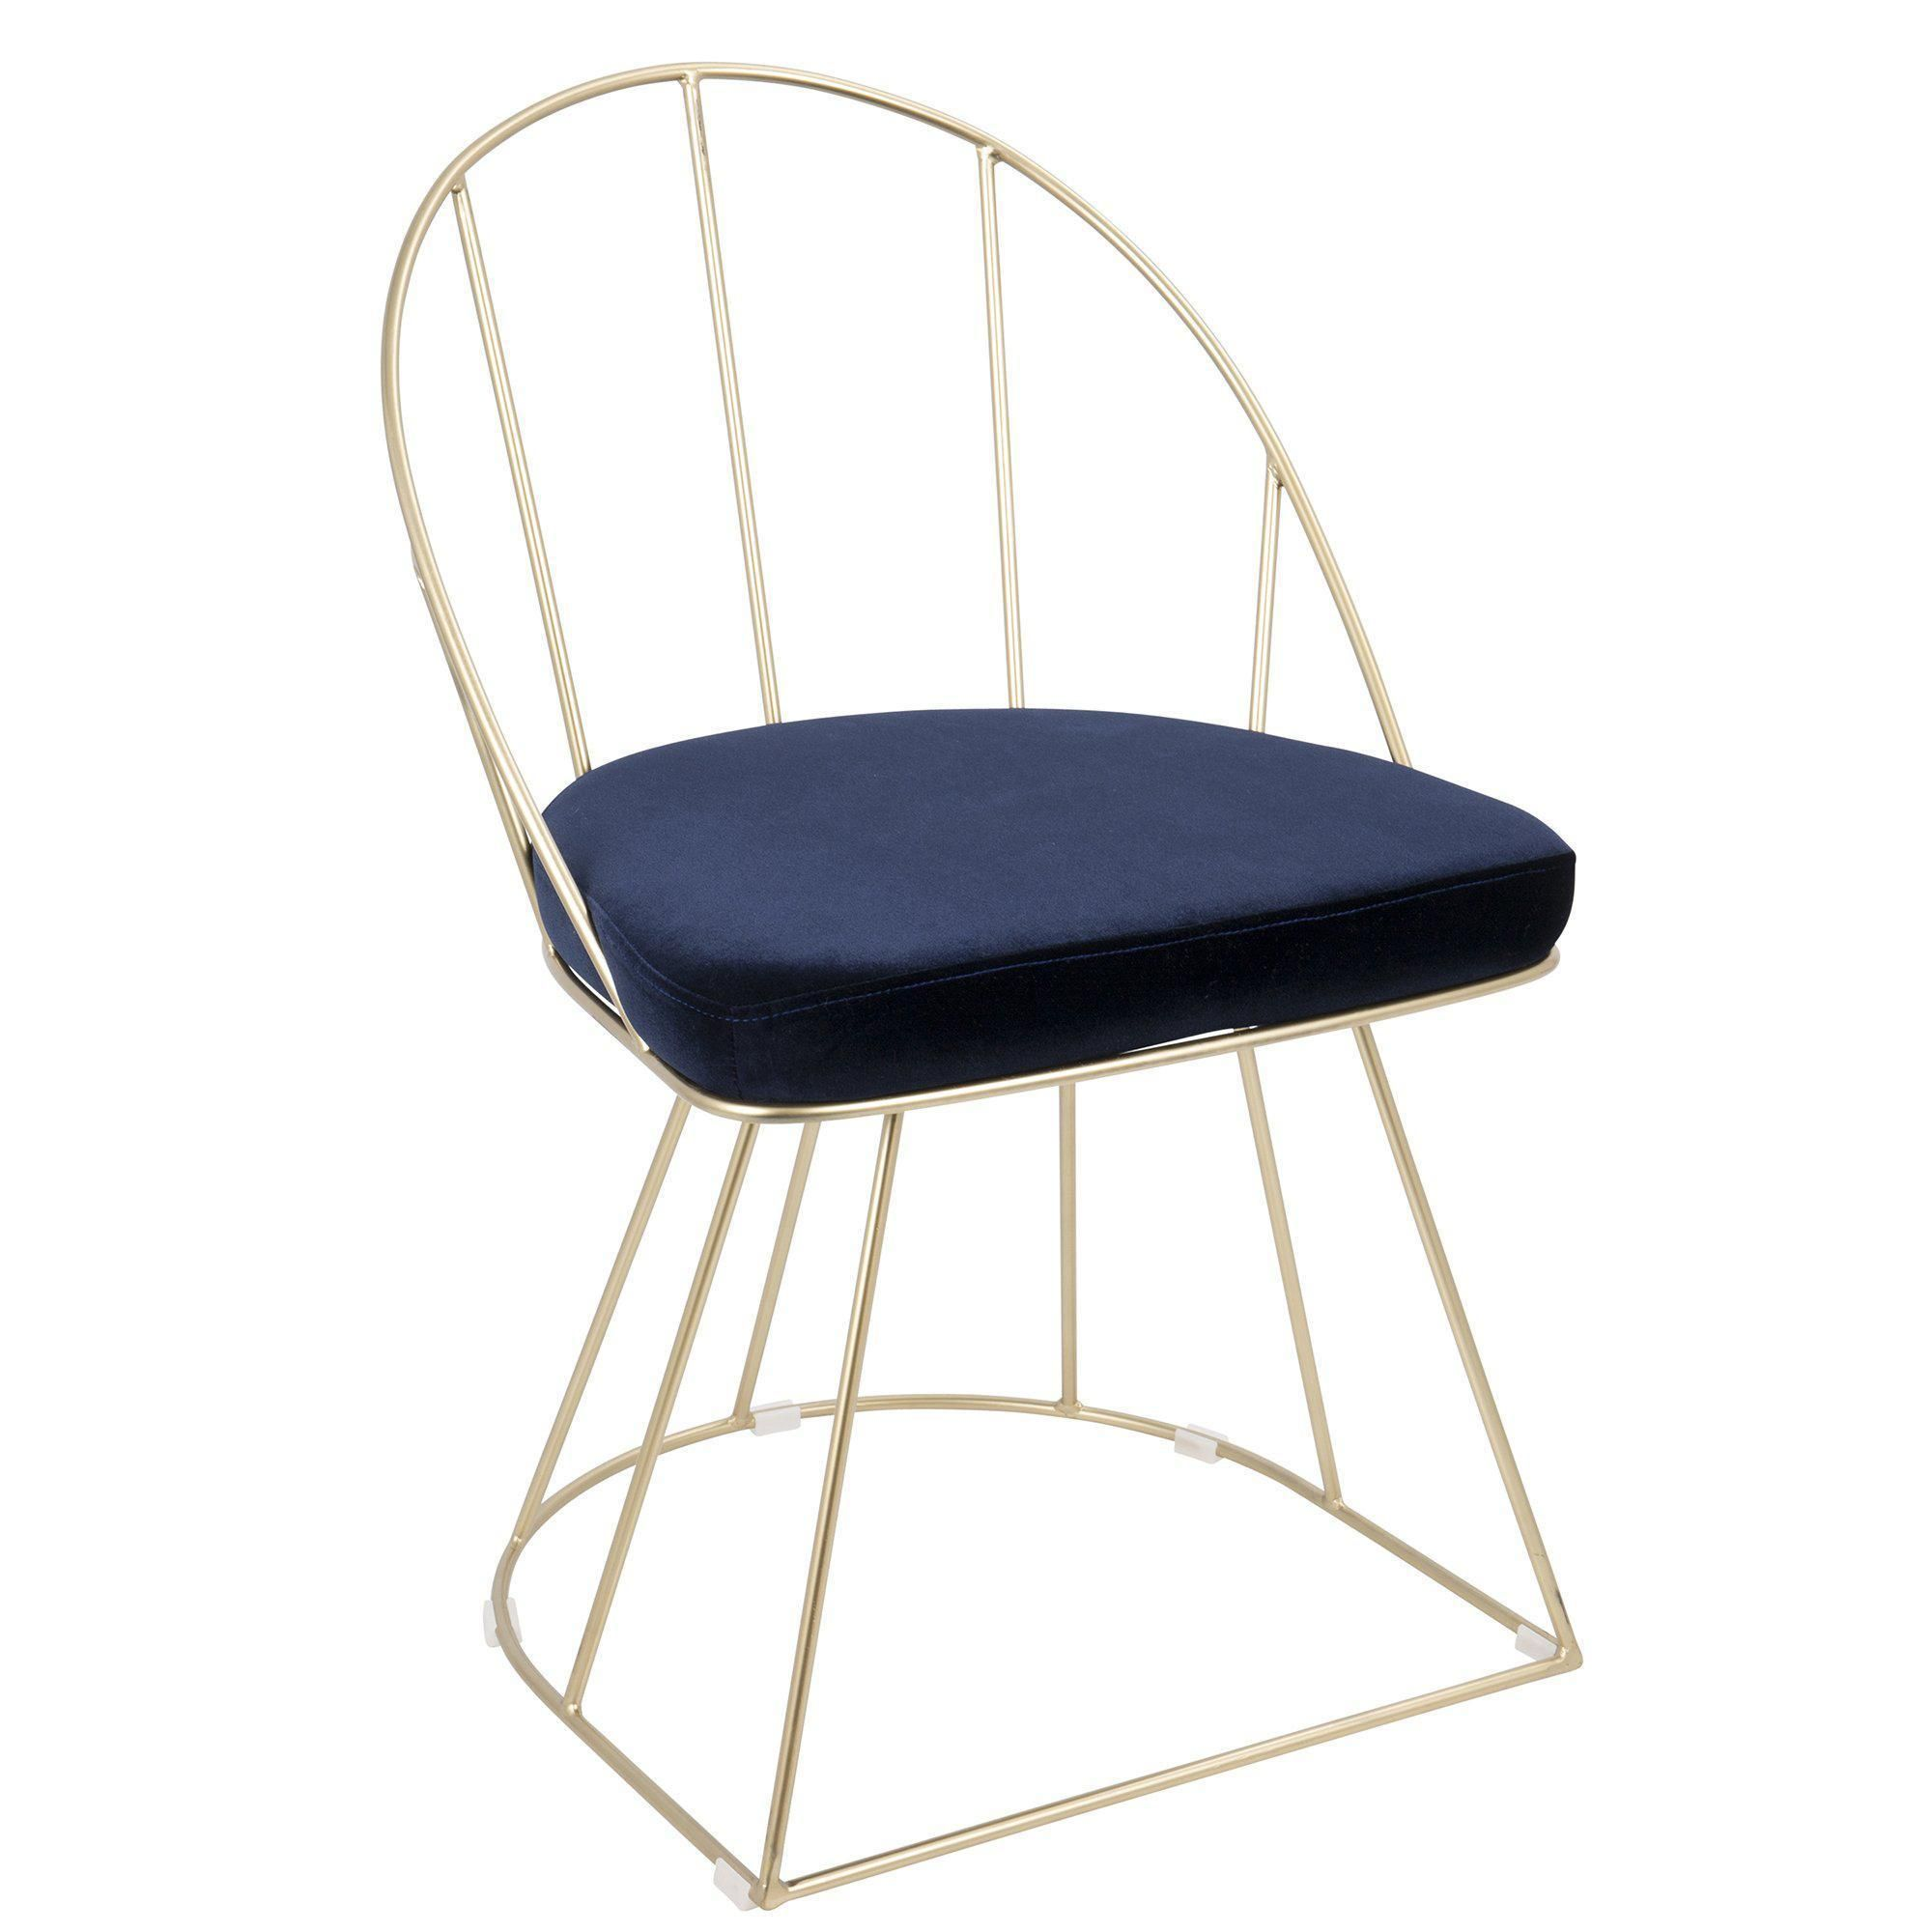 Canary contemporary diningaccent chair in gold and blue